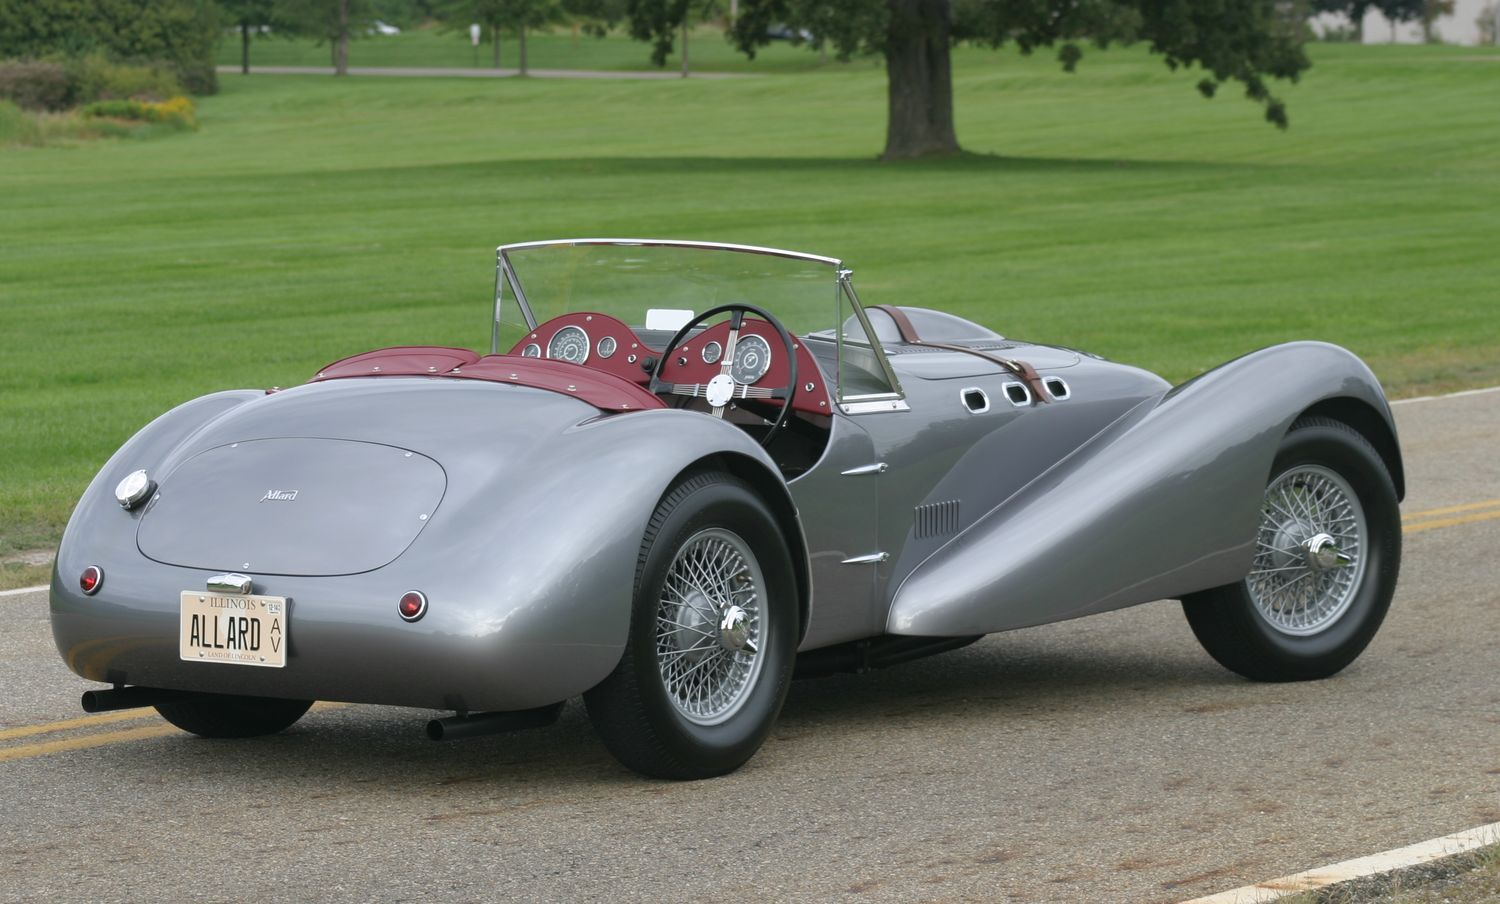 Vintage Sports And Racing Cars Pictures.